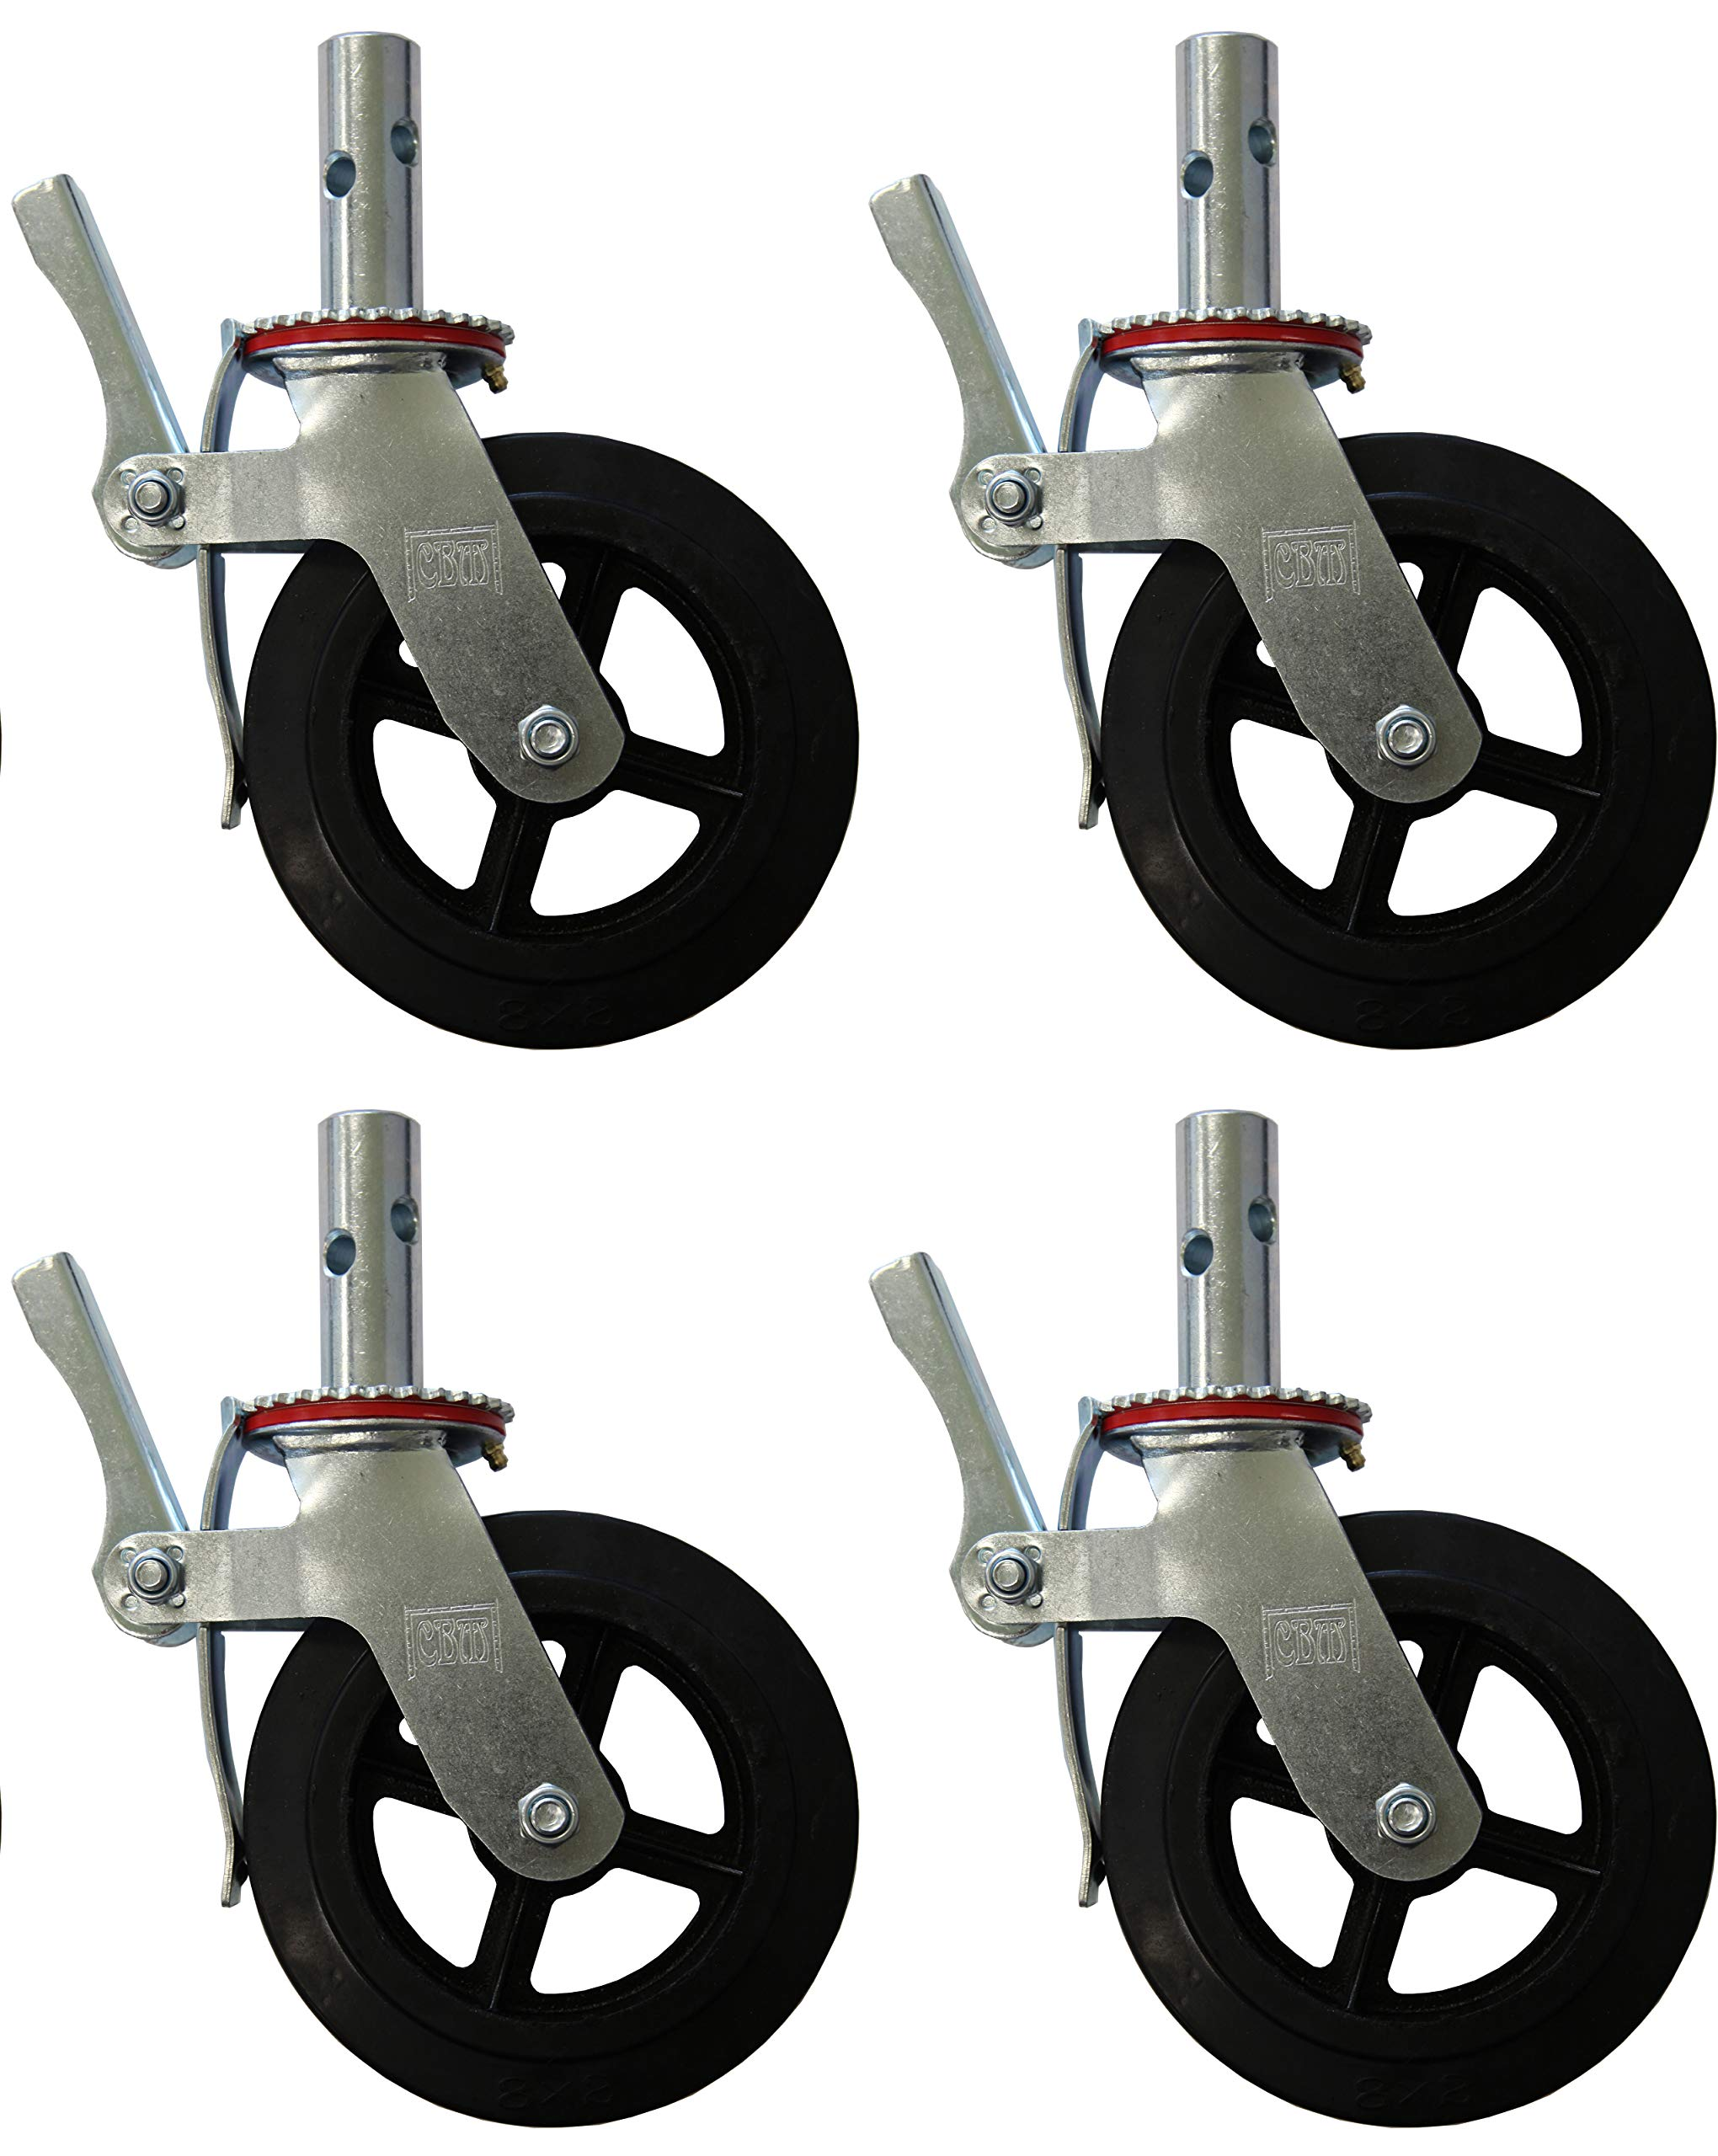 A Set of 4 Wheel 8'' Caster with Cast Iron Hub 1 3/8'' Caster Wheel With 2 Lock-in Brakes Scaffolding Rolling Tower CBM1290 by CBM Scaffold